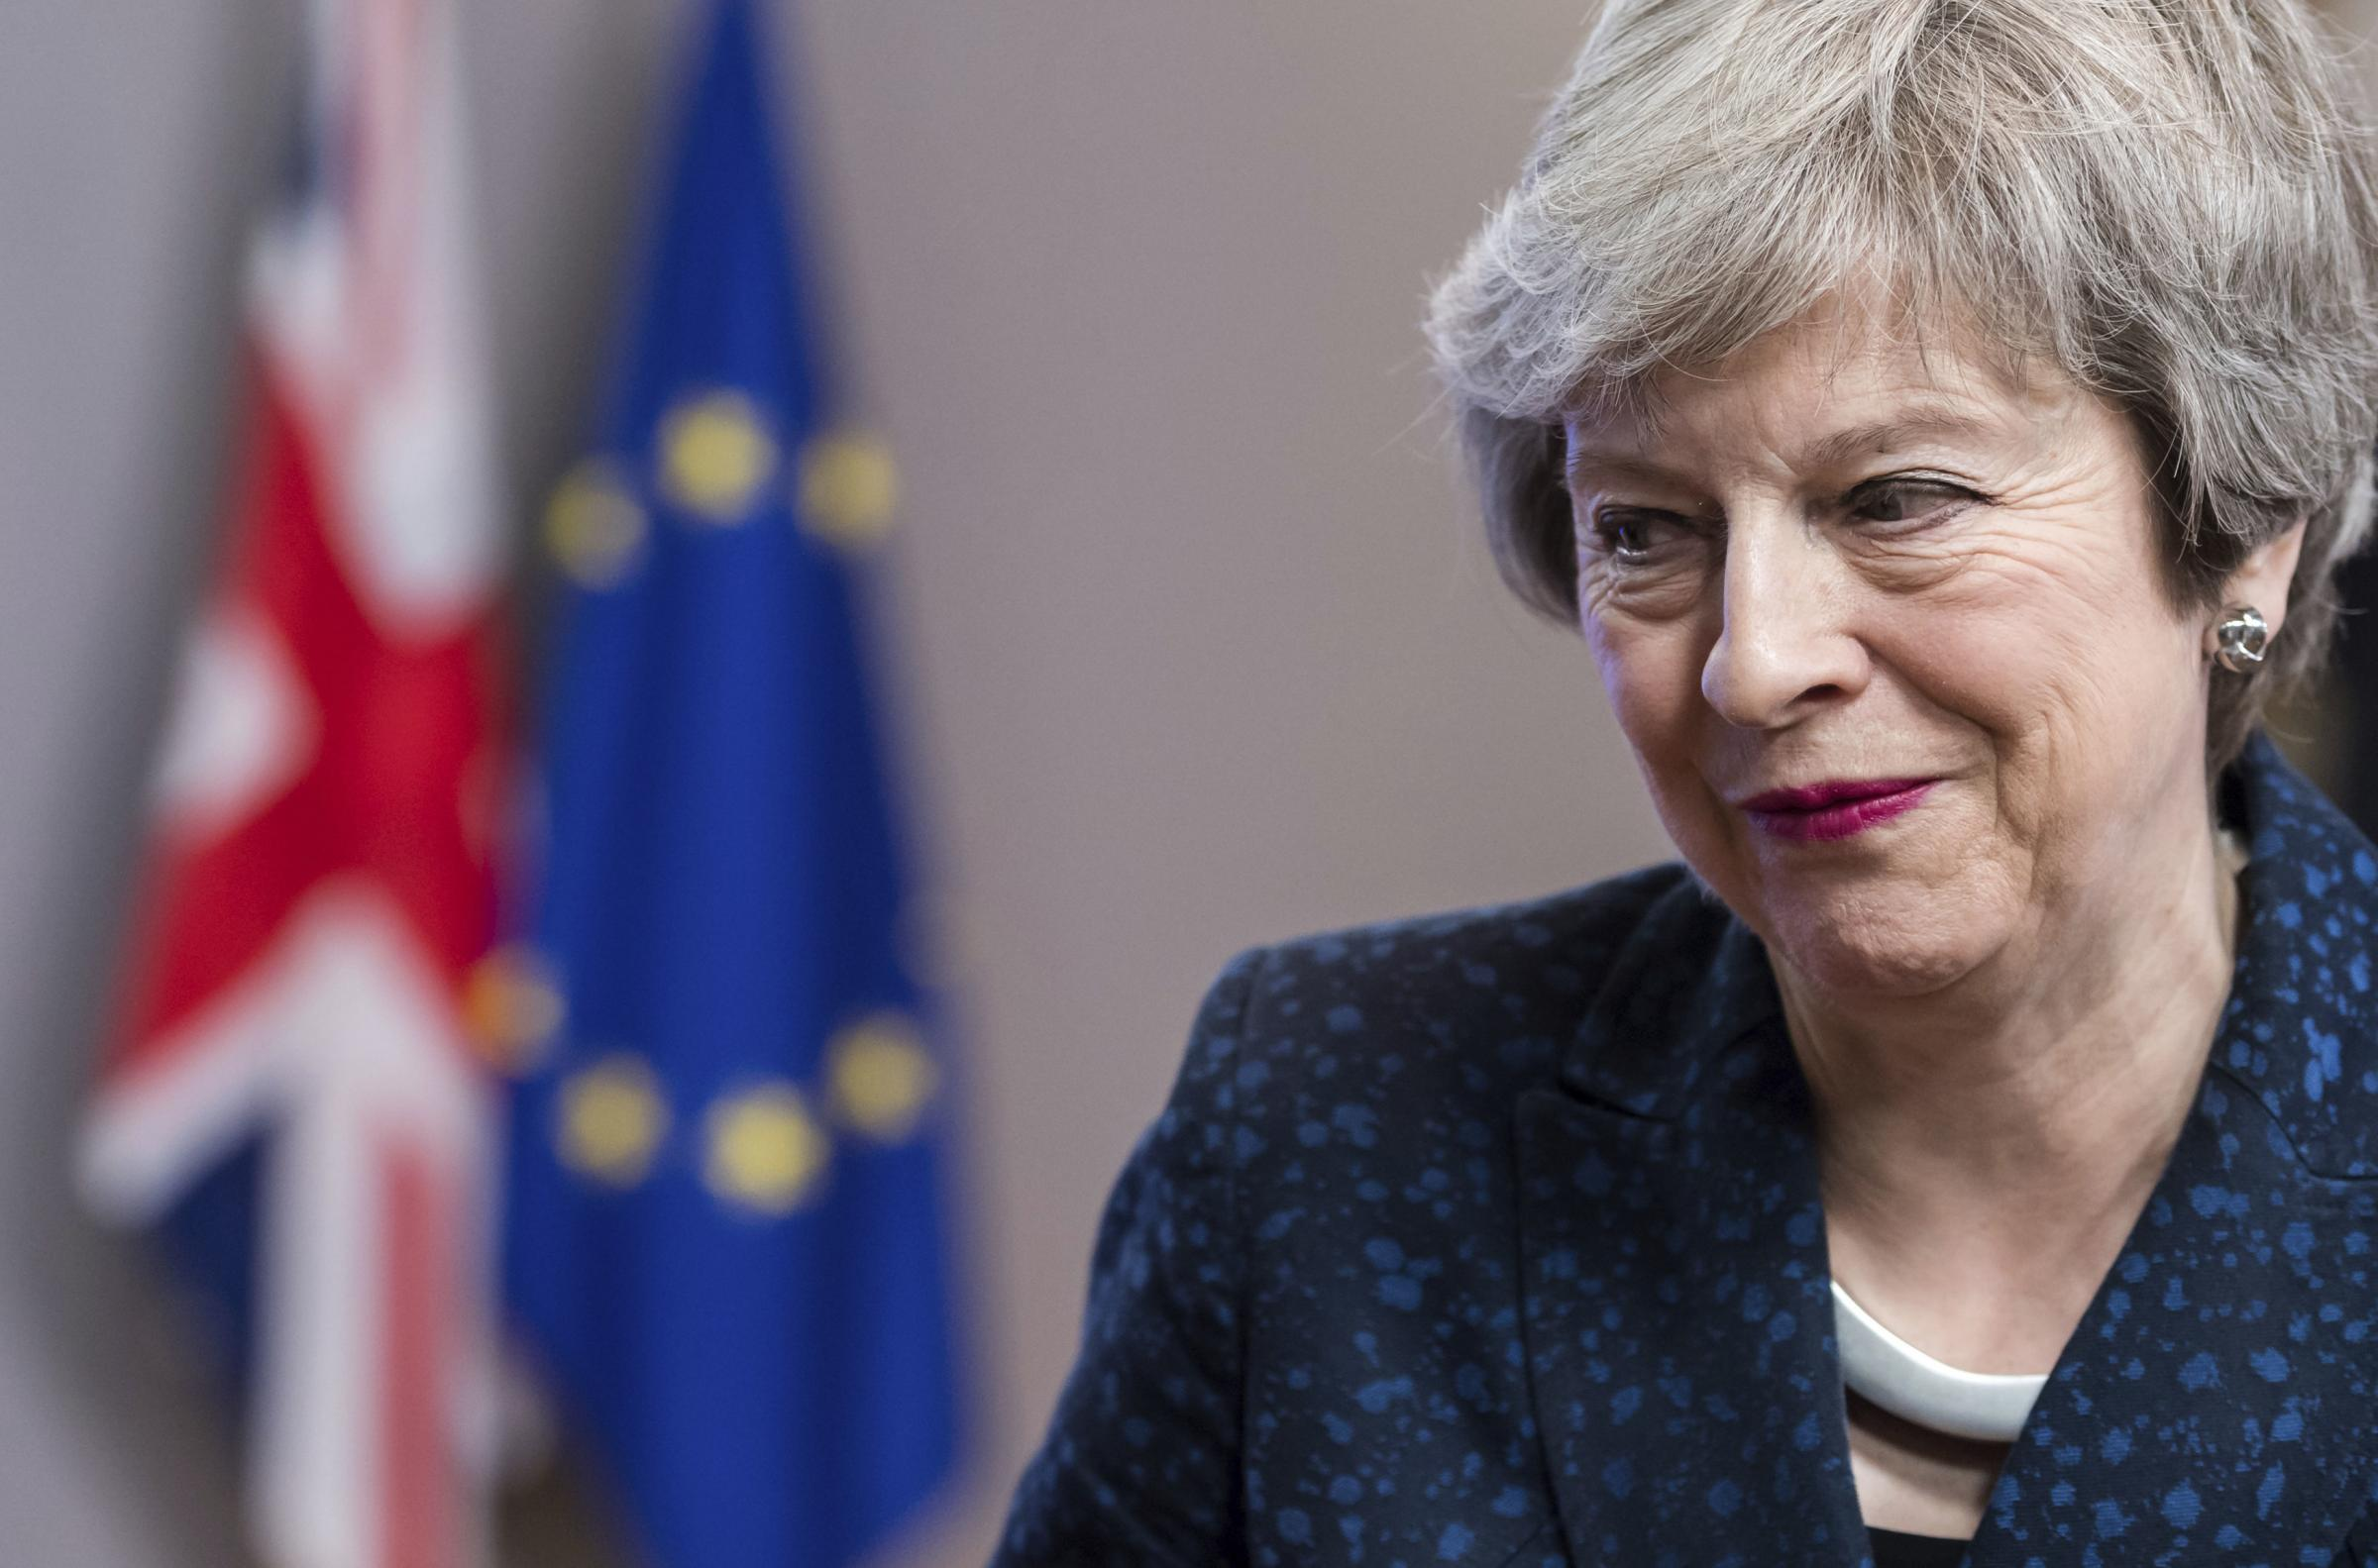 Theresa May's own party cast doubt over her ability to get the deal through